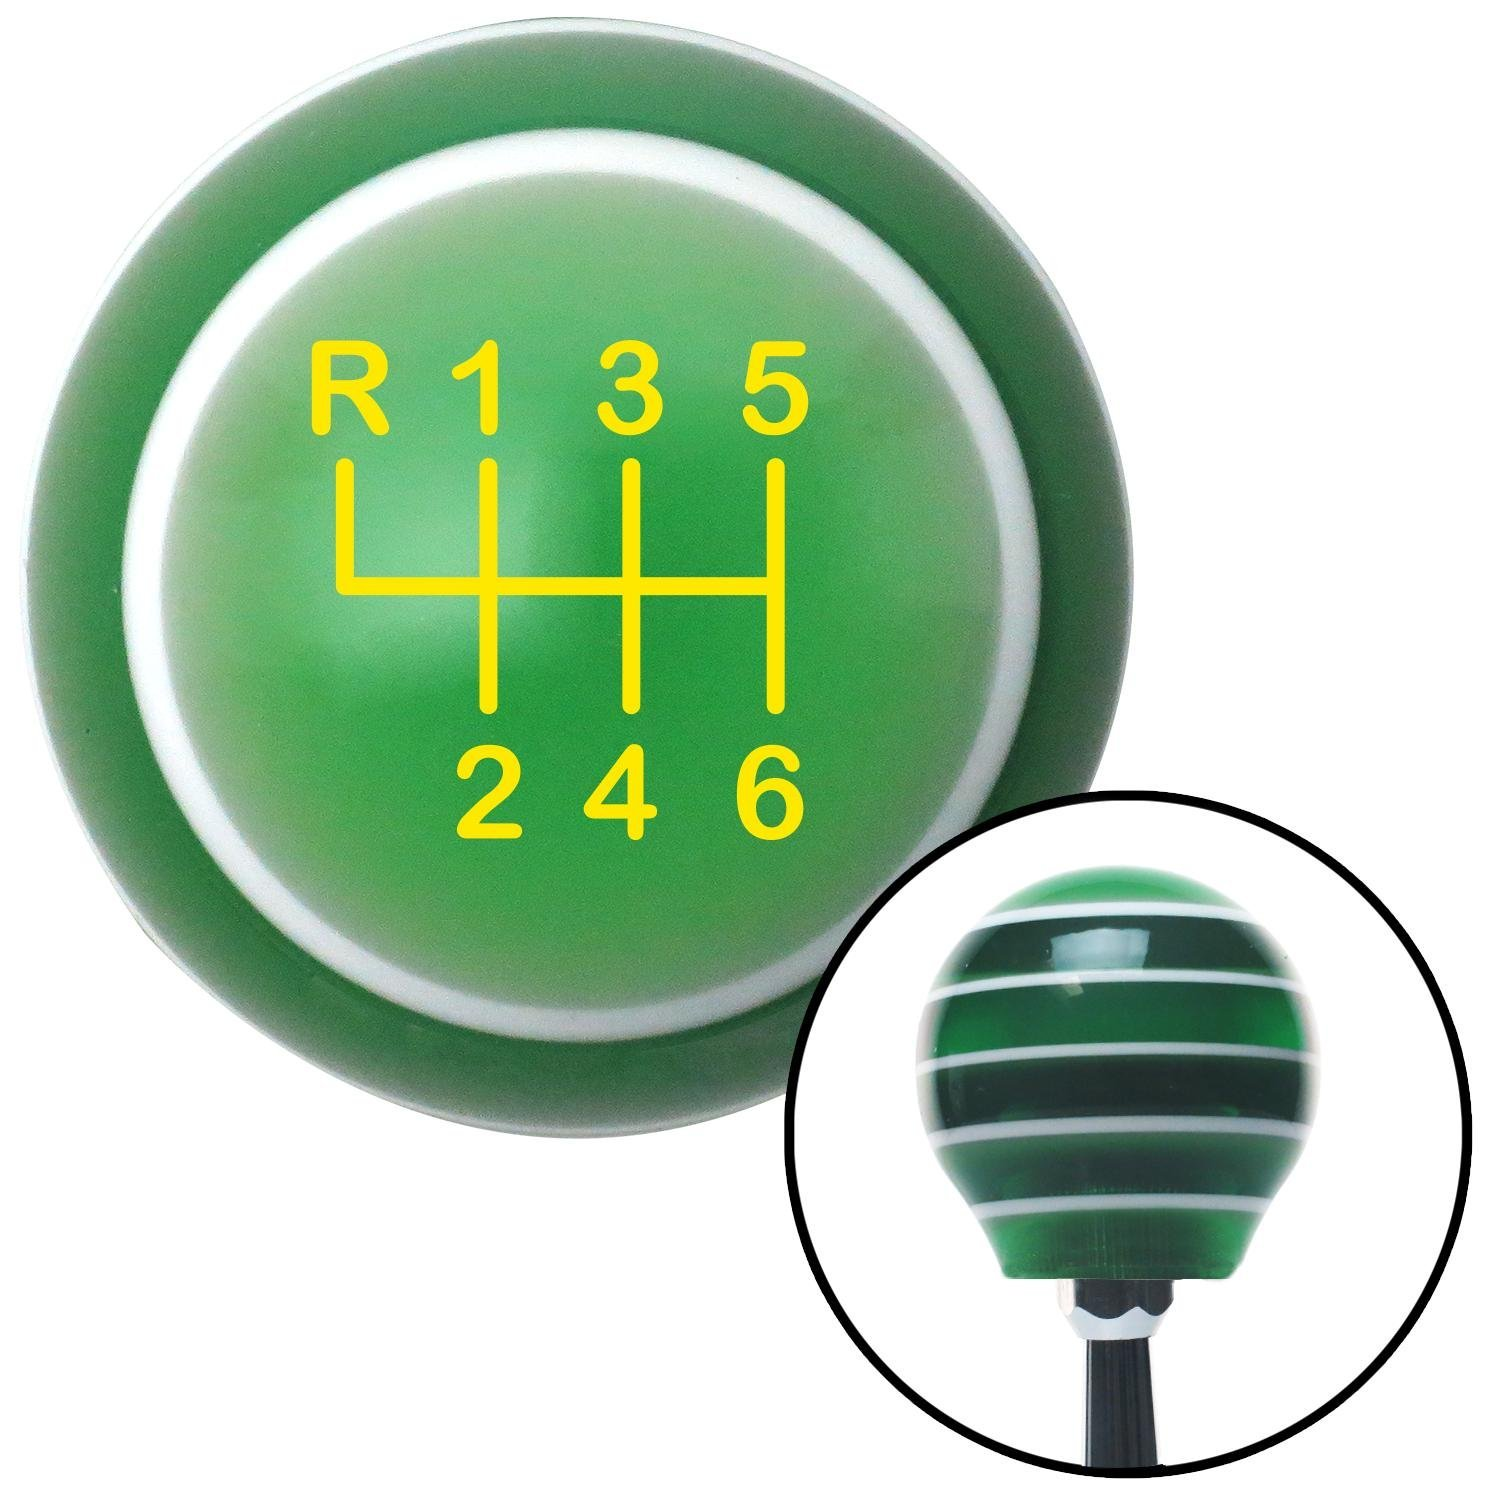 American Shifter 126948 Green Stripe Shift Knob with M16 x 1.5 Insert Yellow Shift Pattern 20n